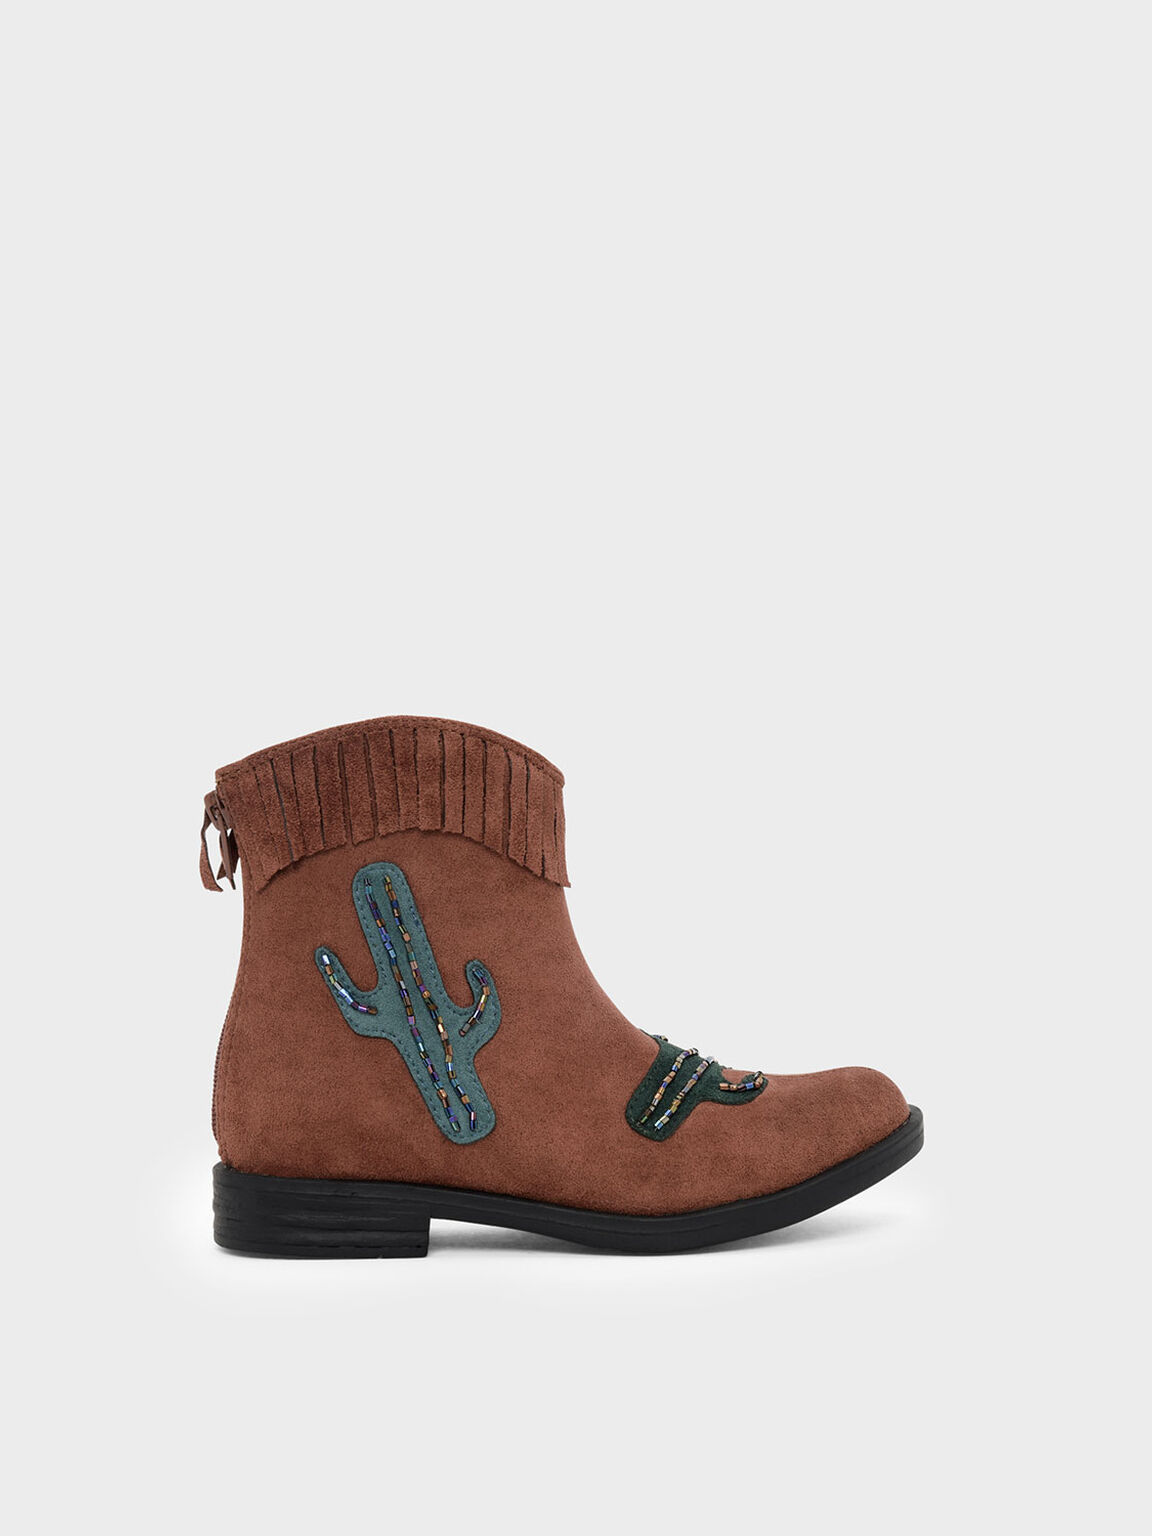 Kids Cactus Detail Boots, Brown, hi-res